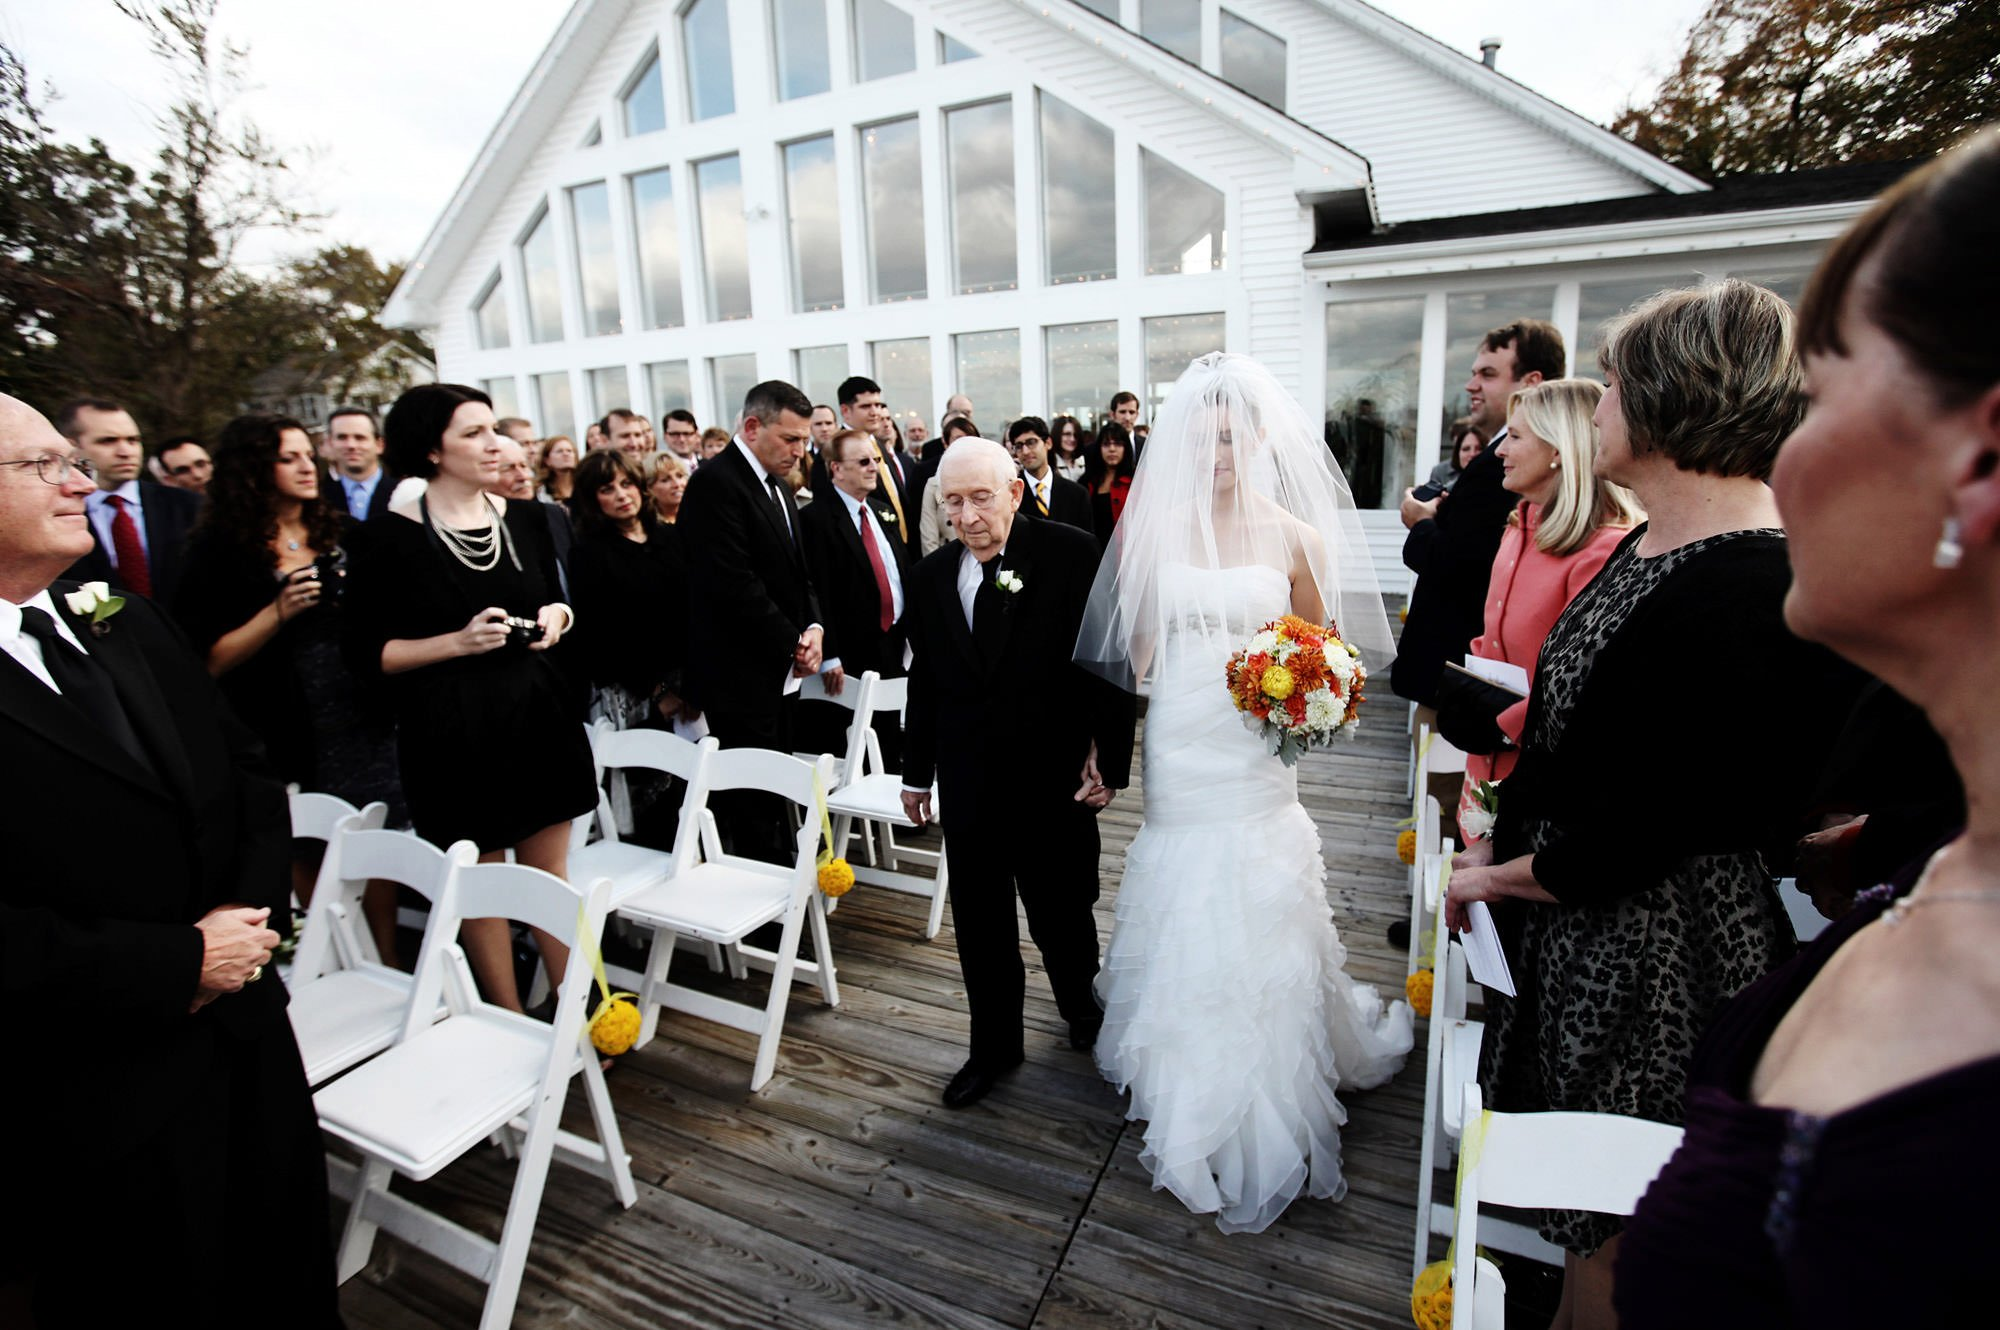 The bride is escorted down the aisle during her Celebrations at the Bay wedding ceremony.